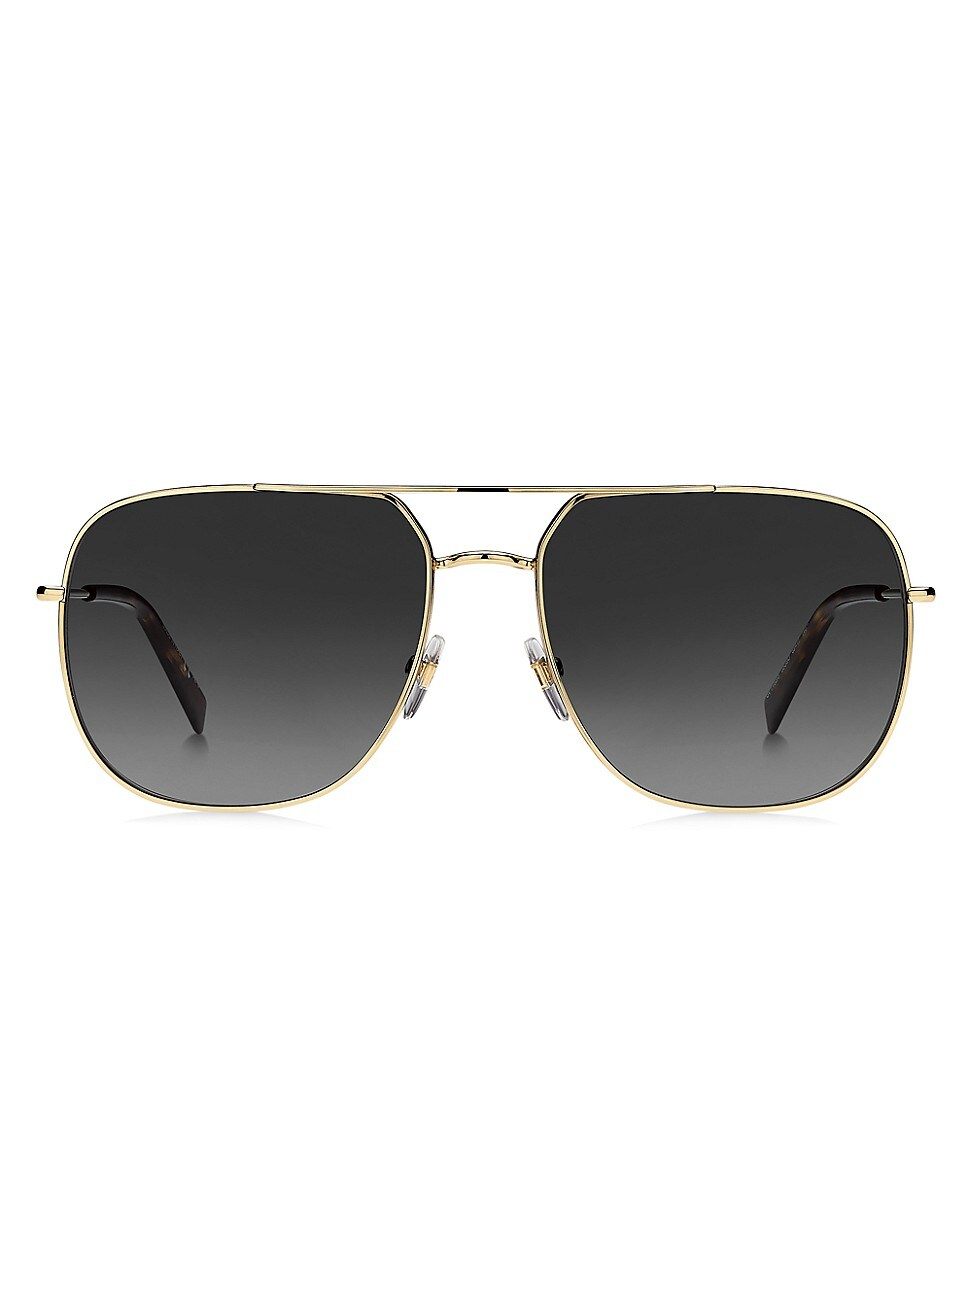 Givenchy MEN'S 59MM NAVIGATOR SUNGLASSES